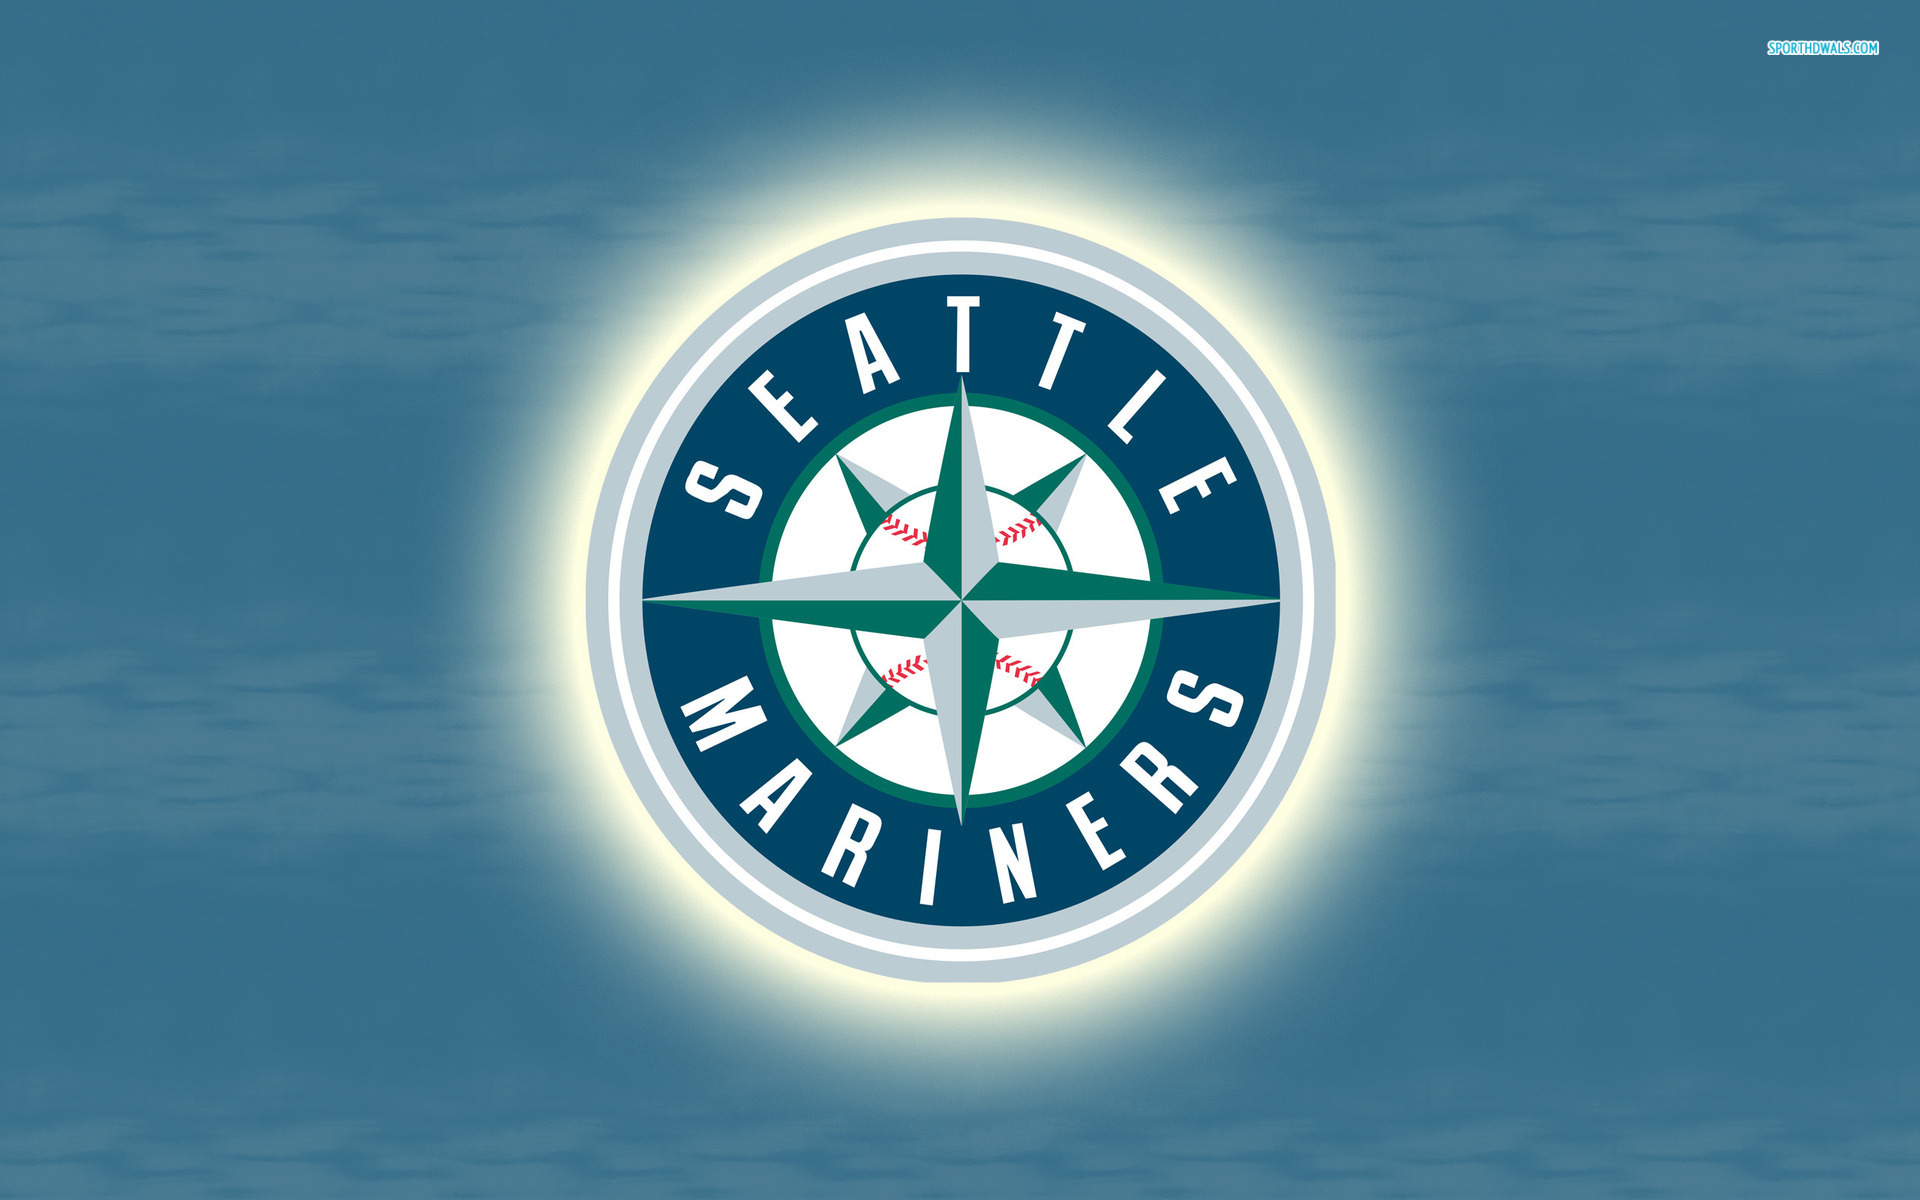 Seattle Mariners wallpaper 1920x1200 69576 1920x1200